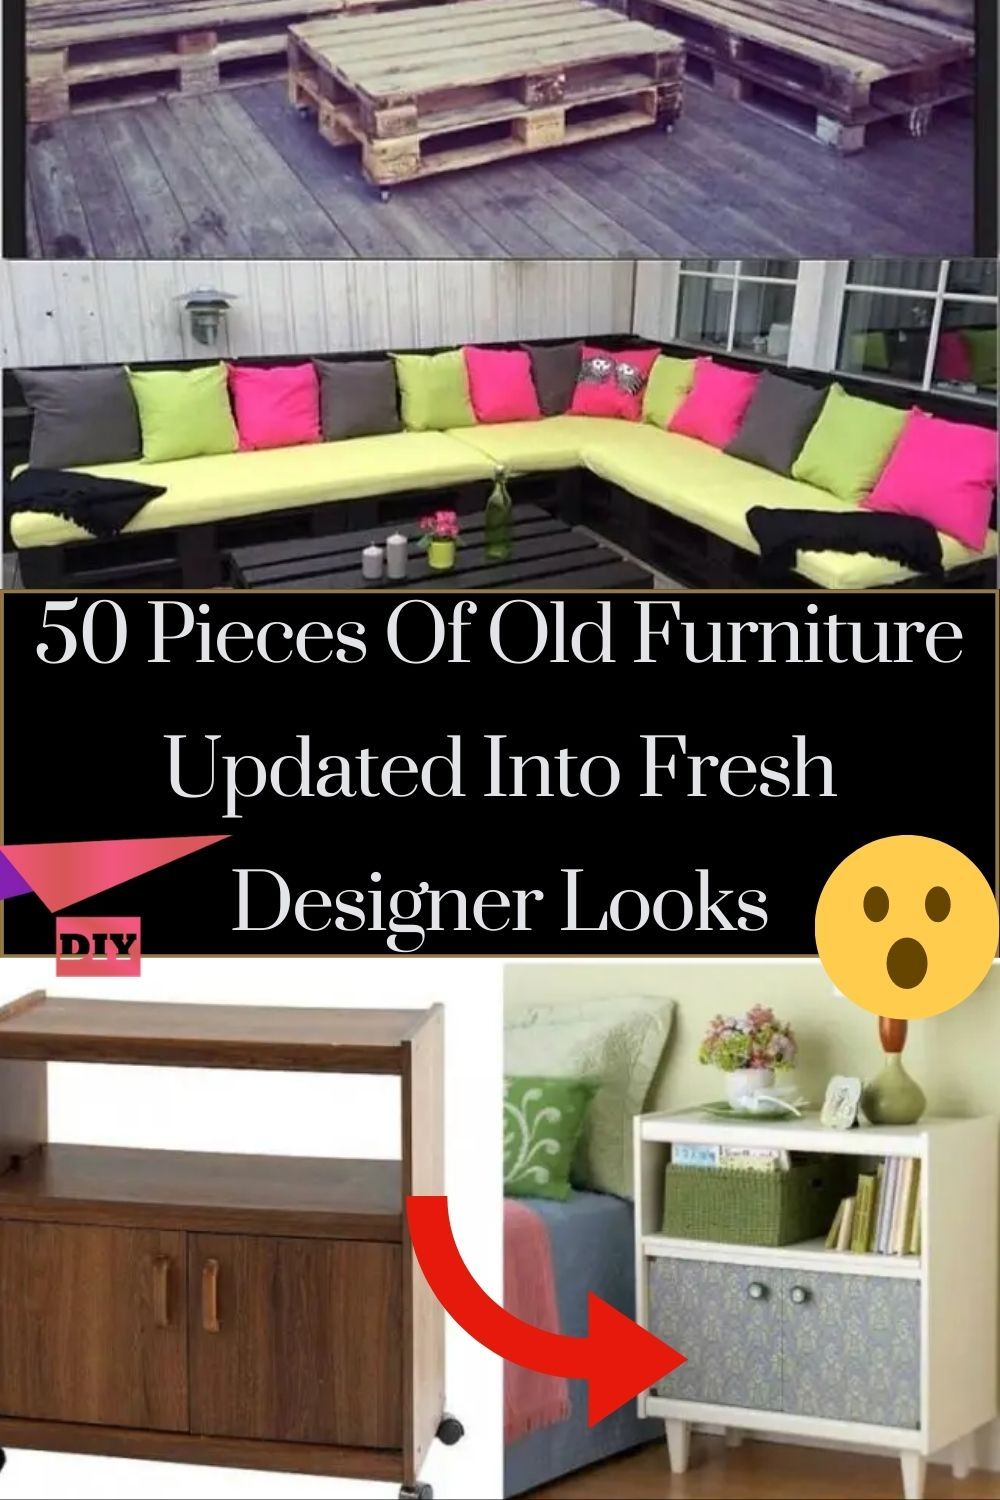 50 Brilliant Ideas To Breathe New Life Into Old Furniture Hacks Diy Diy Life Hacks Diy Life